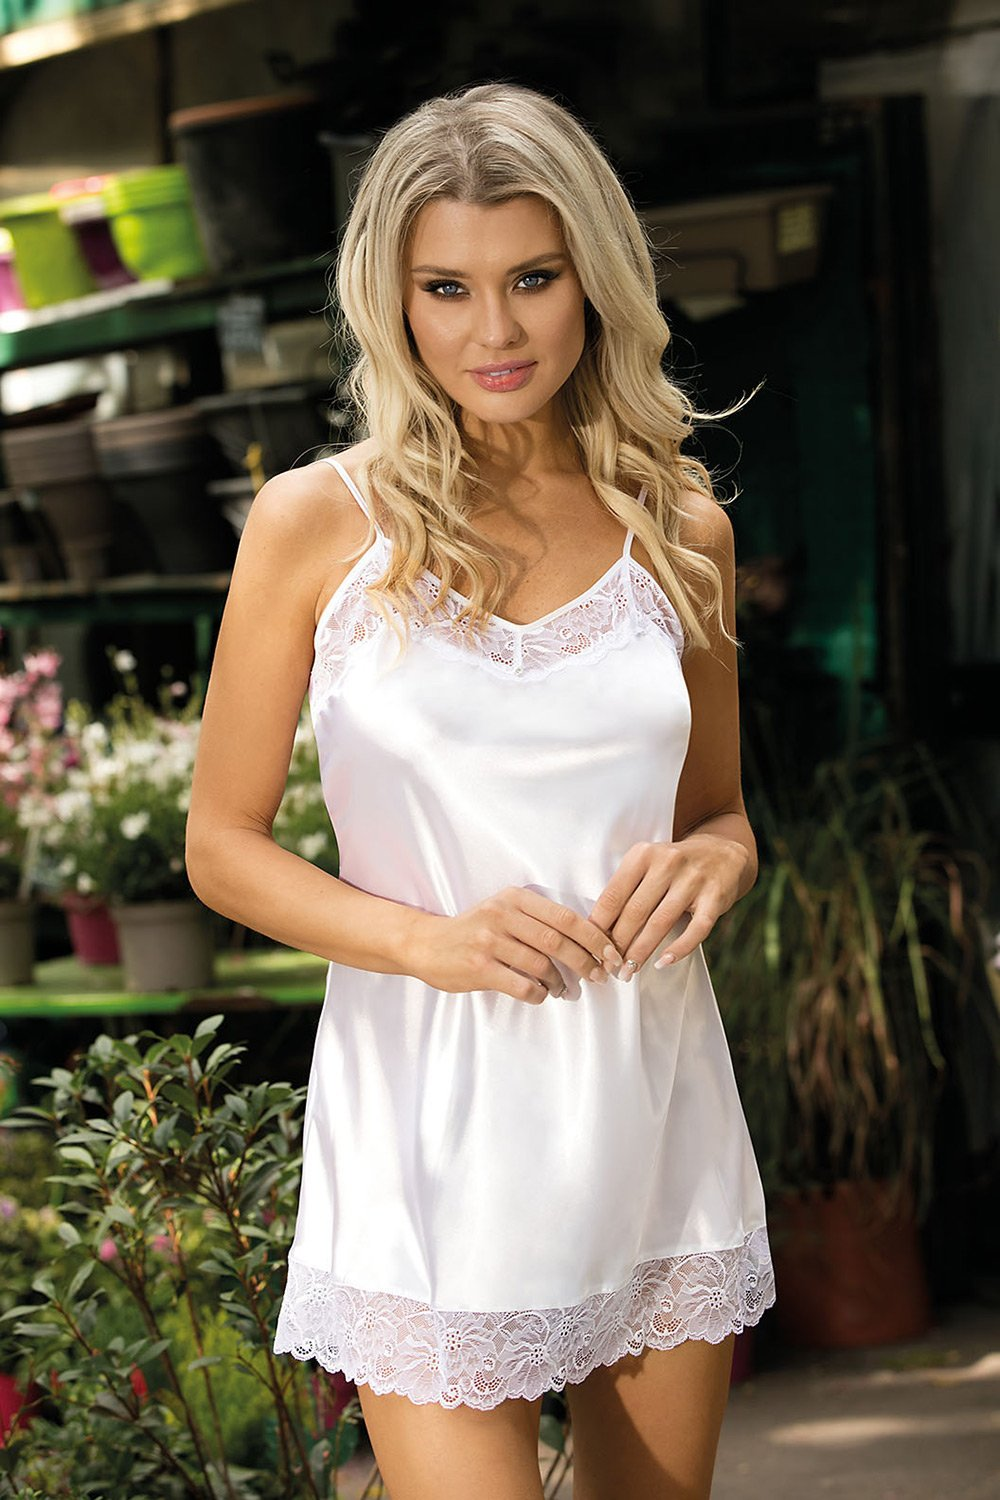 Milan Stunning Satin White Shirtshirt - EVOLESCENT